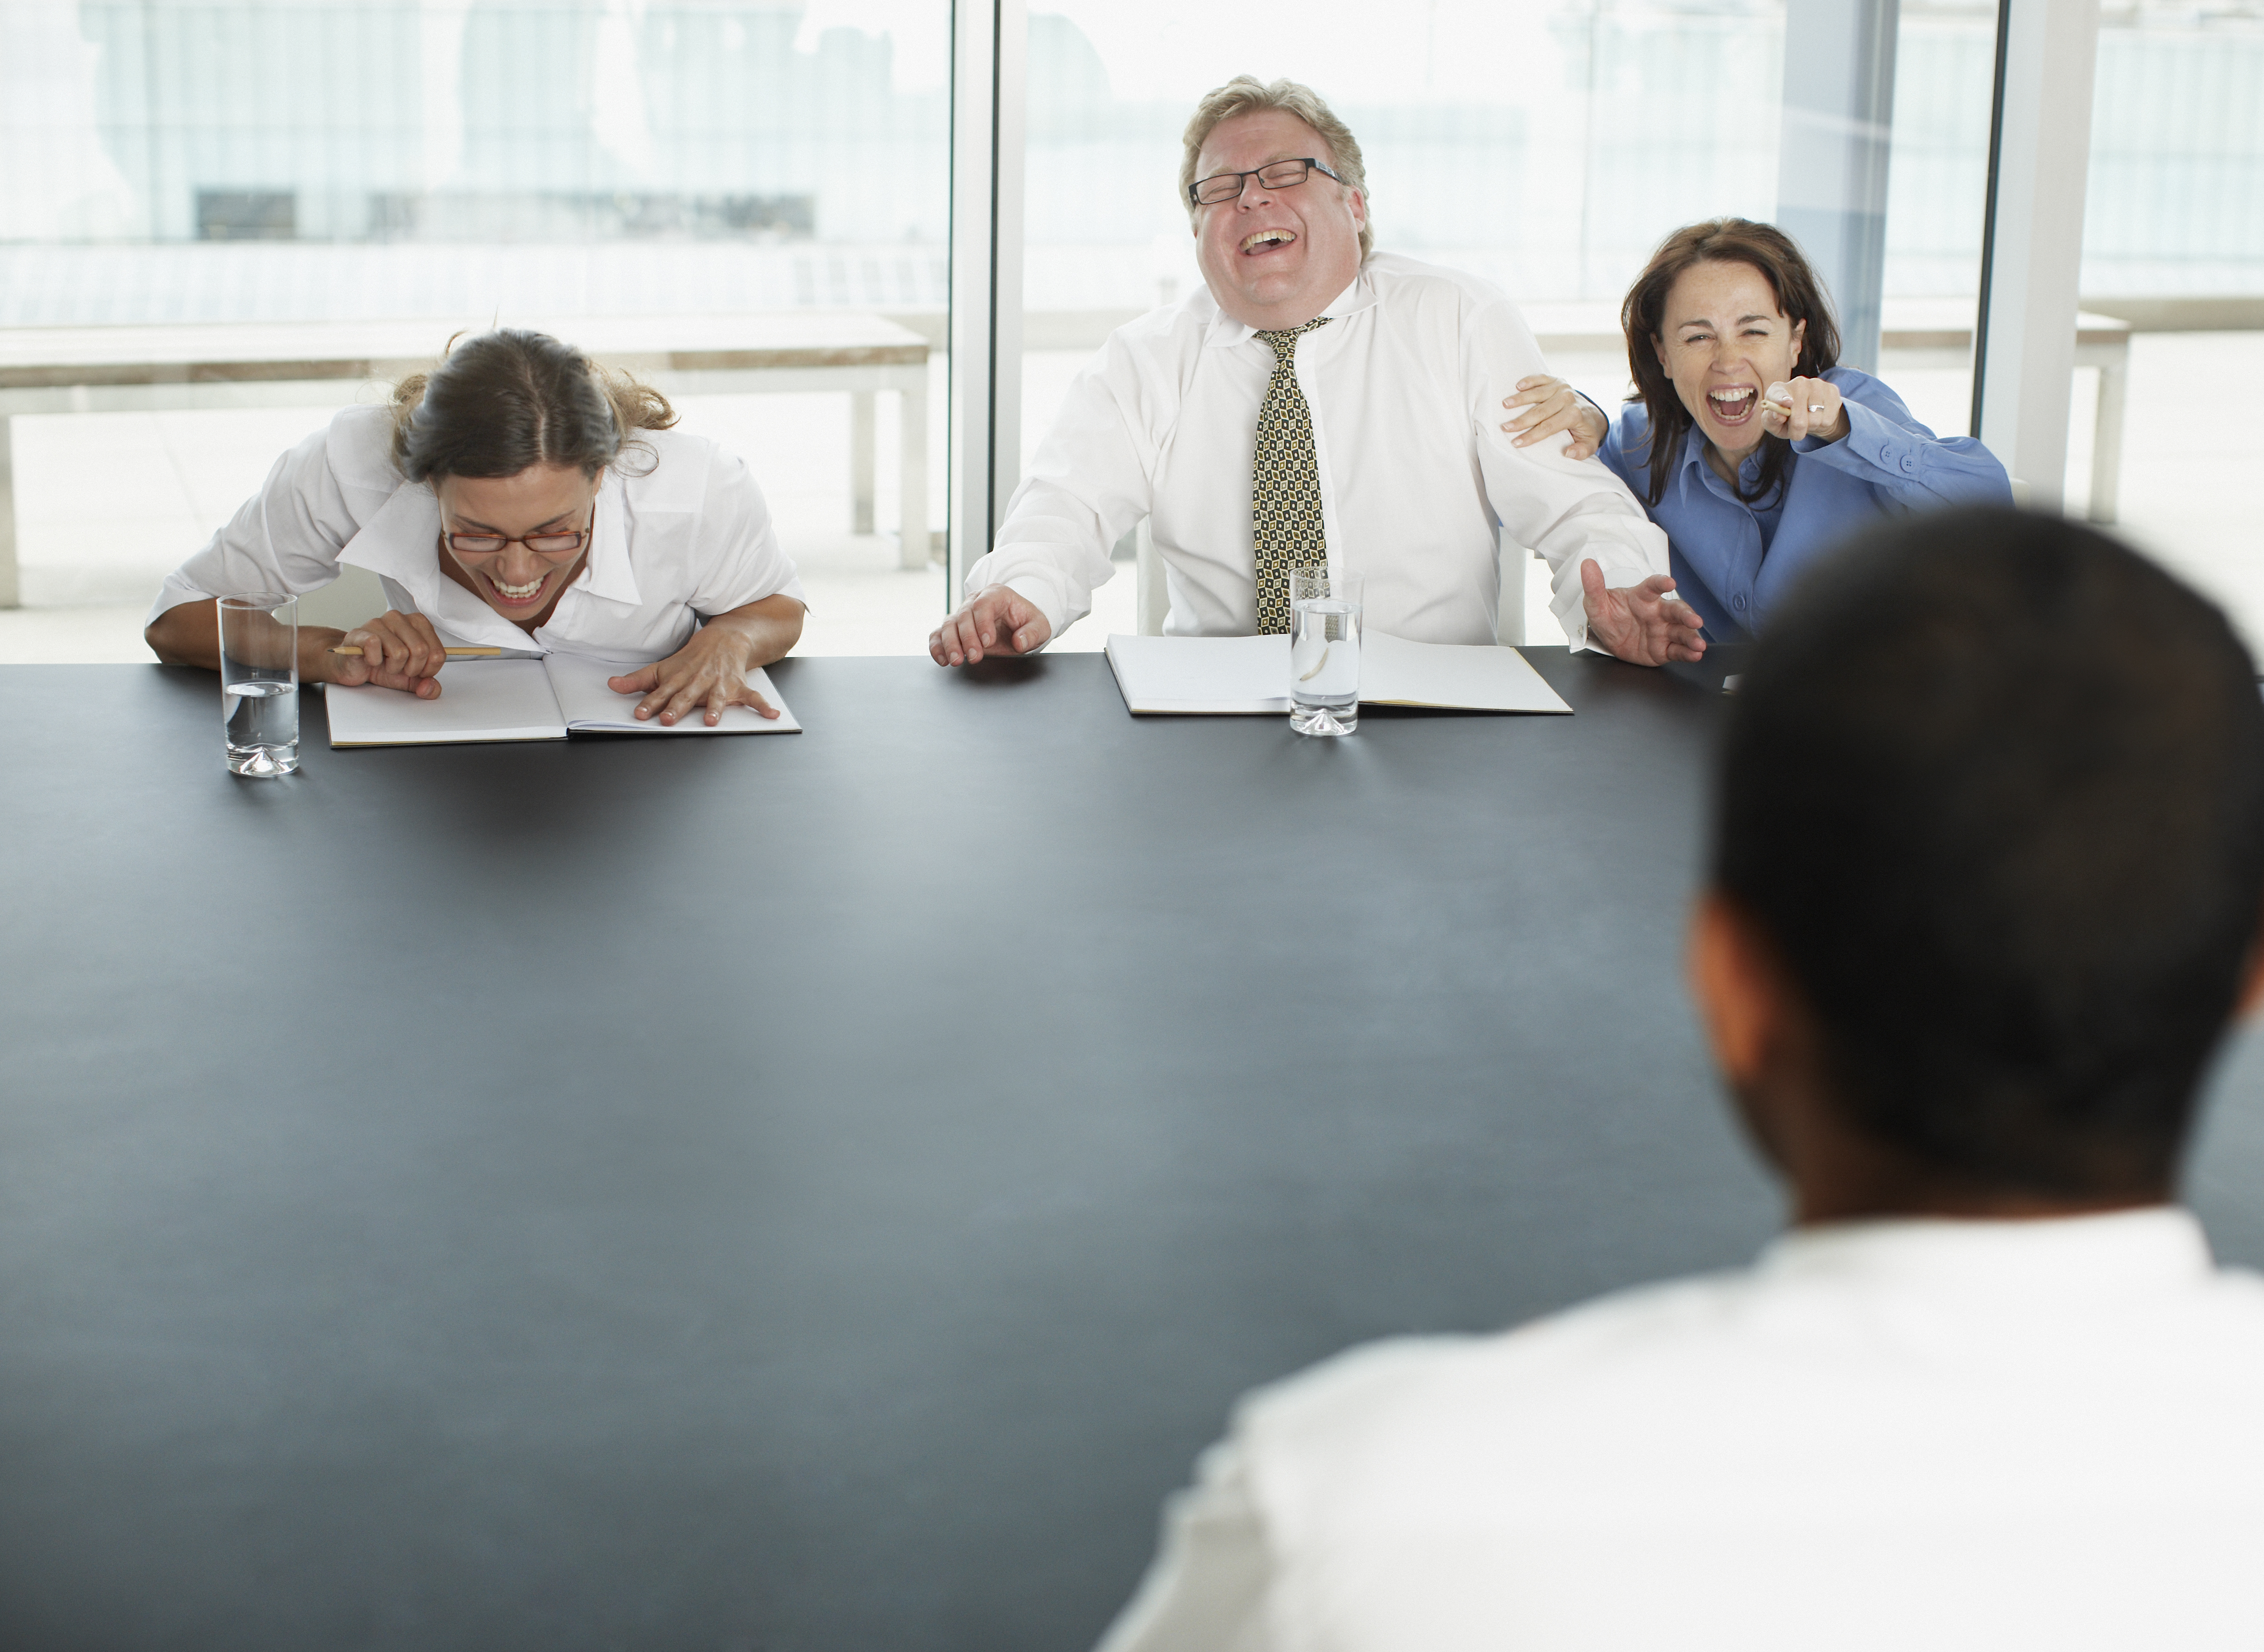 Businesspeople laughing at applicant in interview